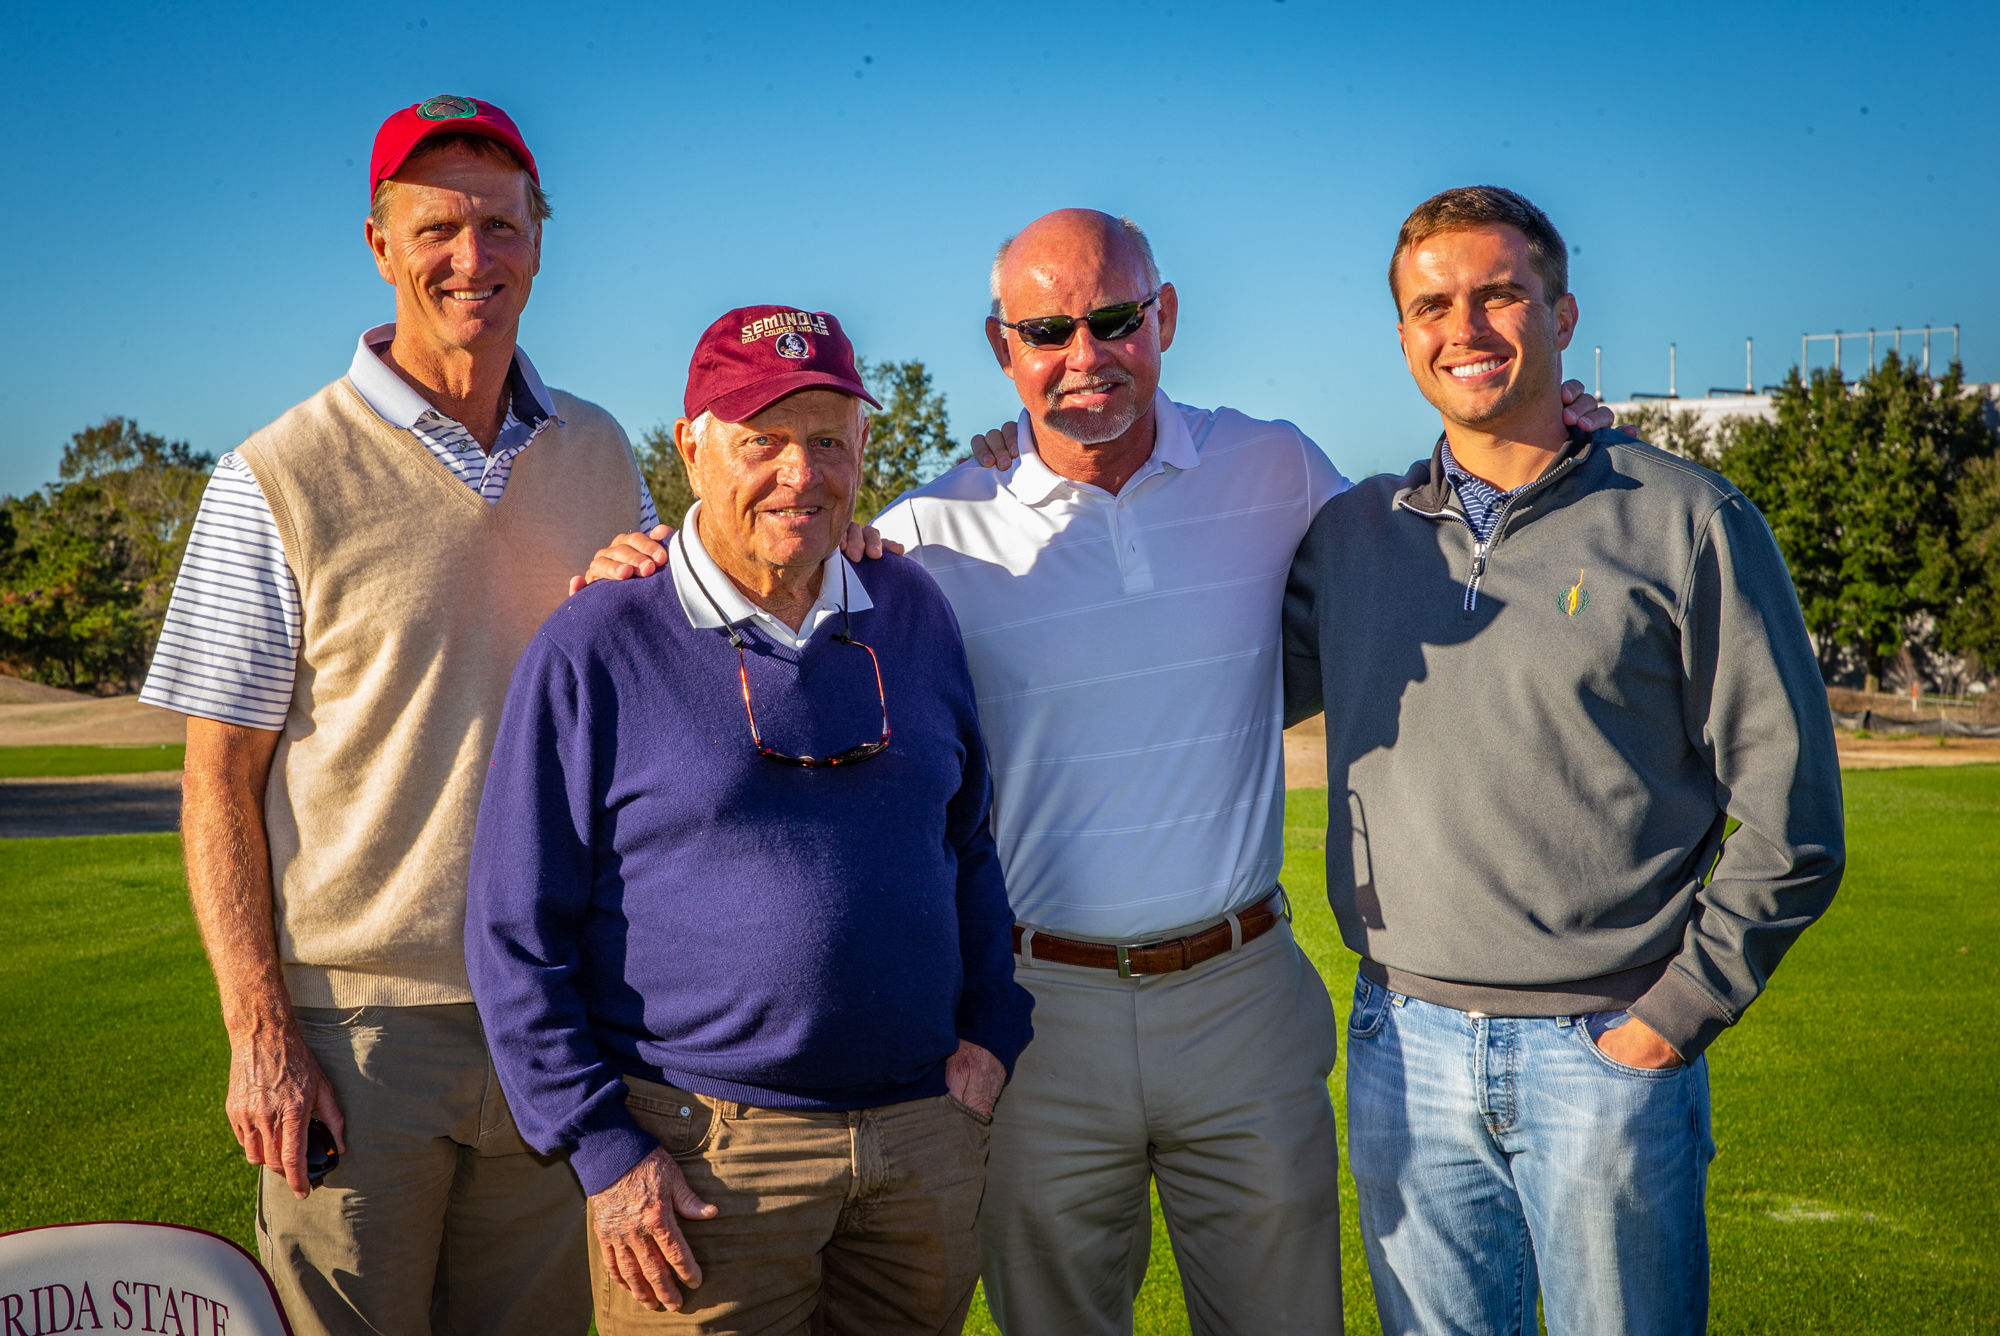 A Visit by Jack Nicklaus: January 6, 2019